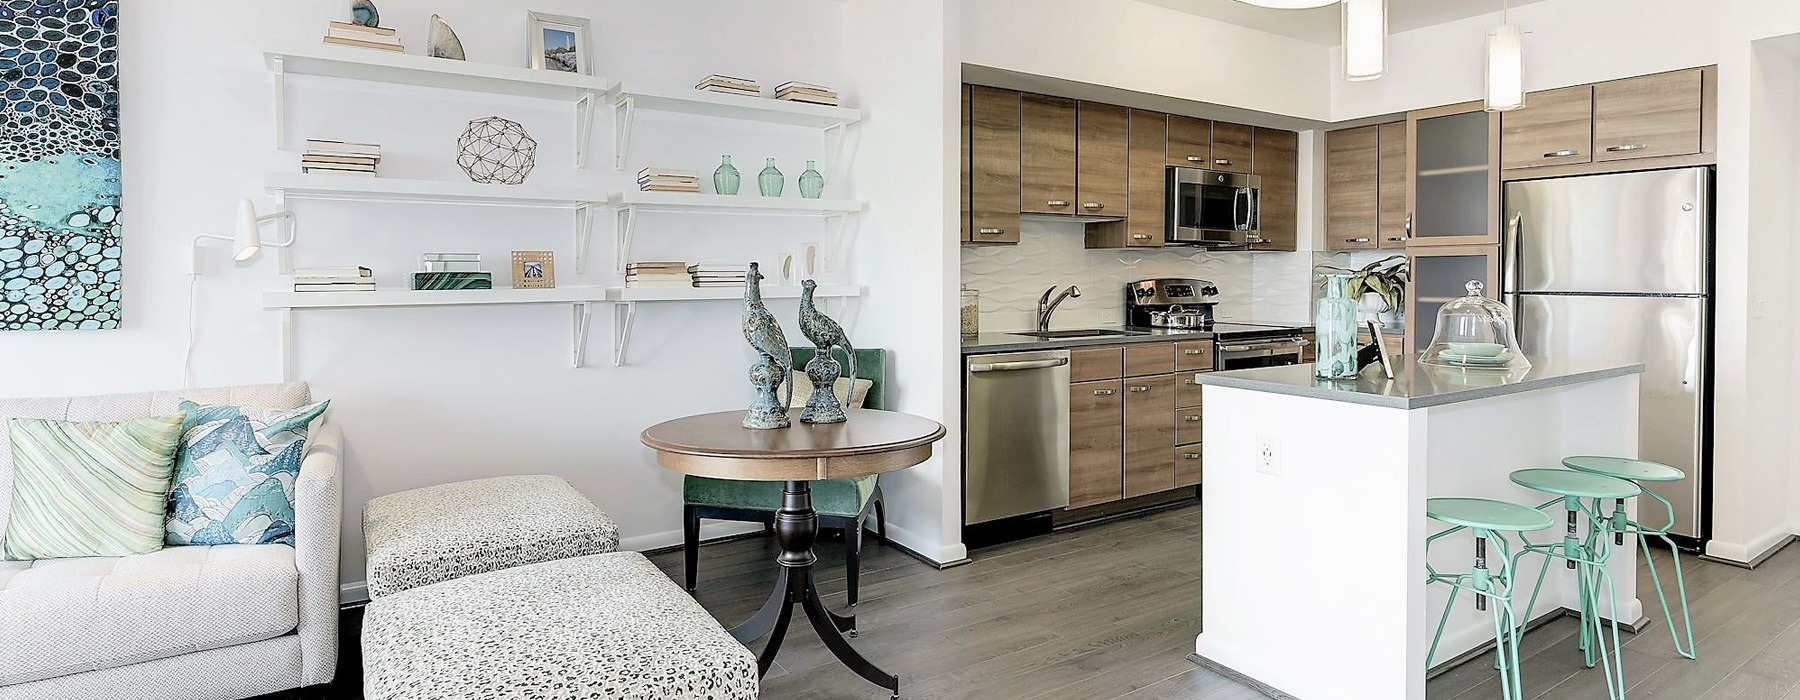 Open concept kitchen with modern finishes